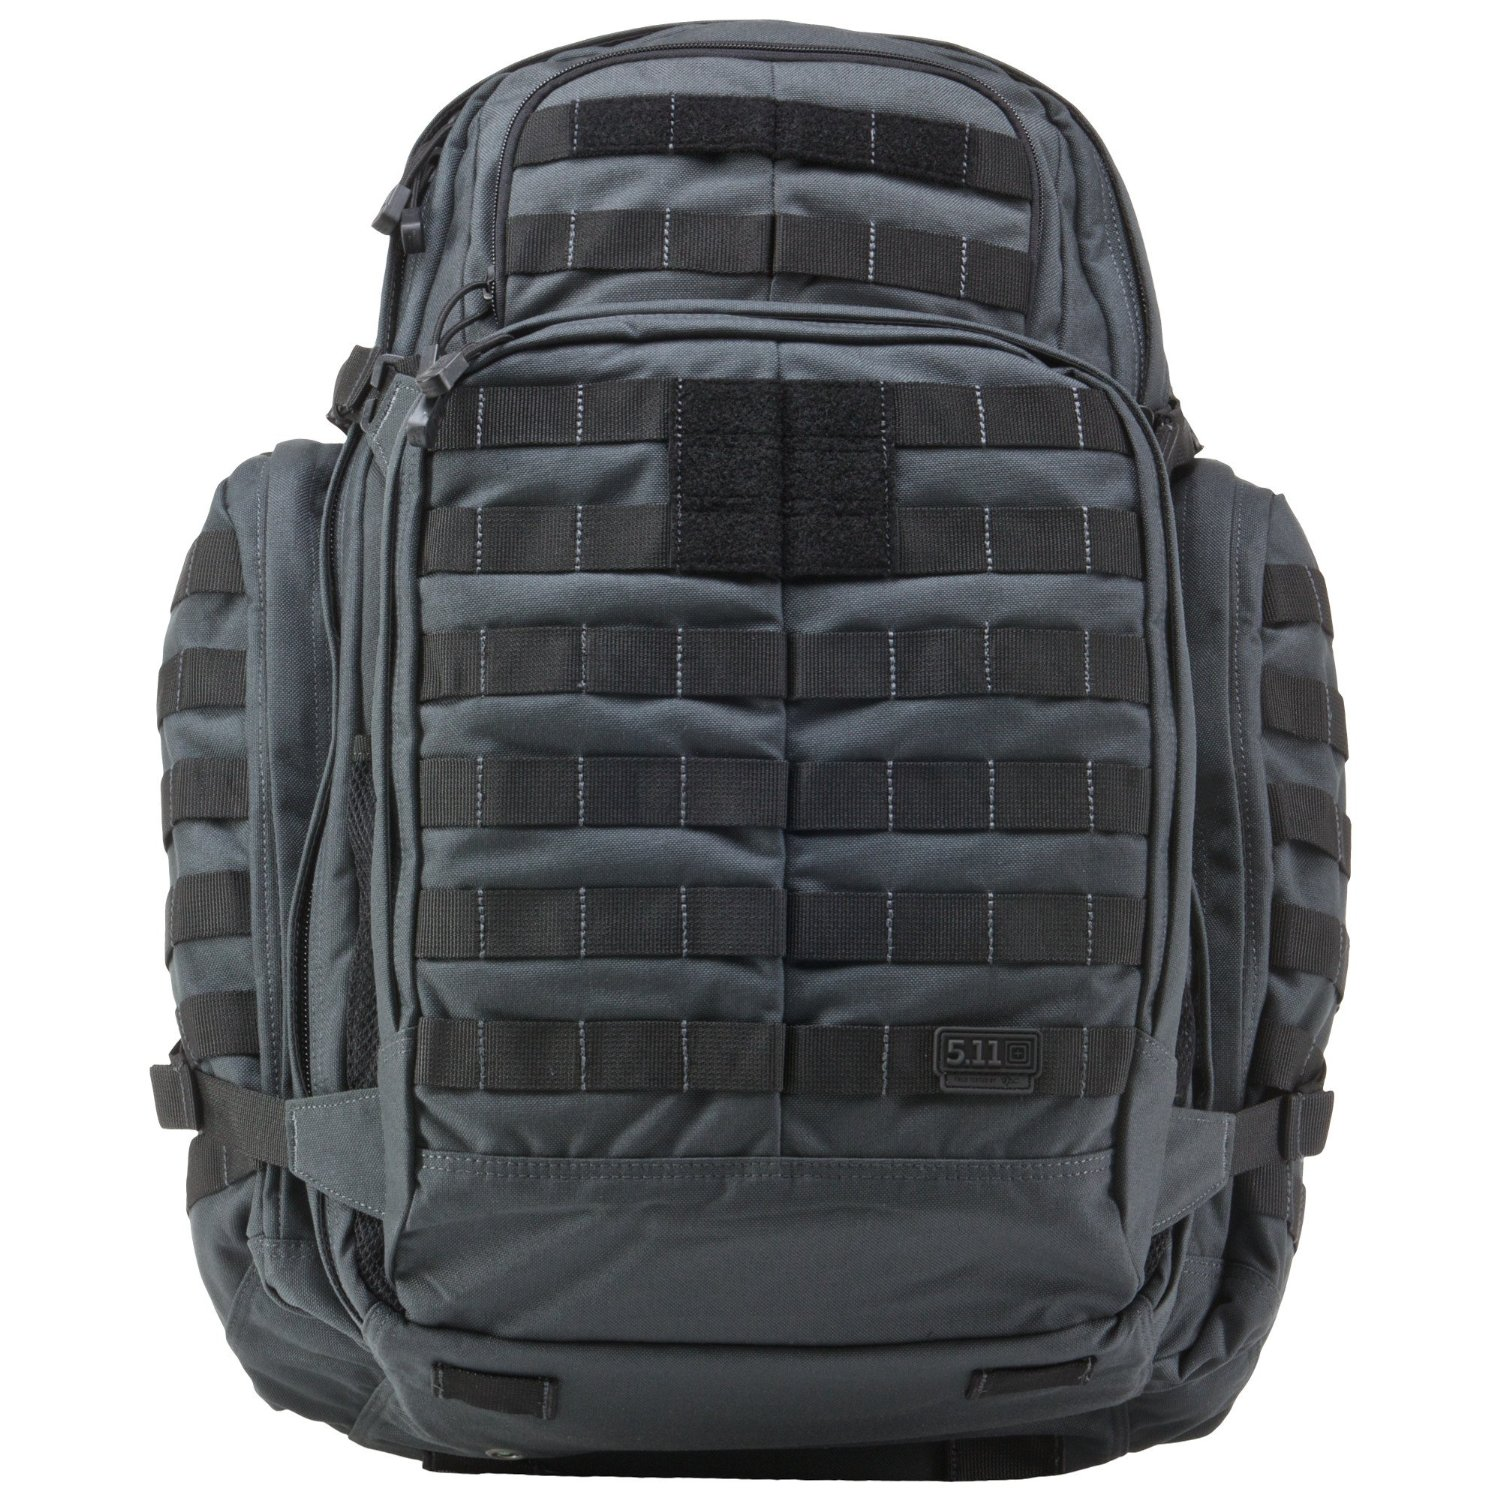 5 11 Tactical Rush 72 Backpack Review